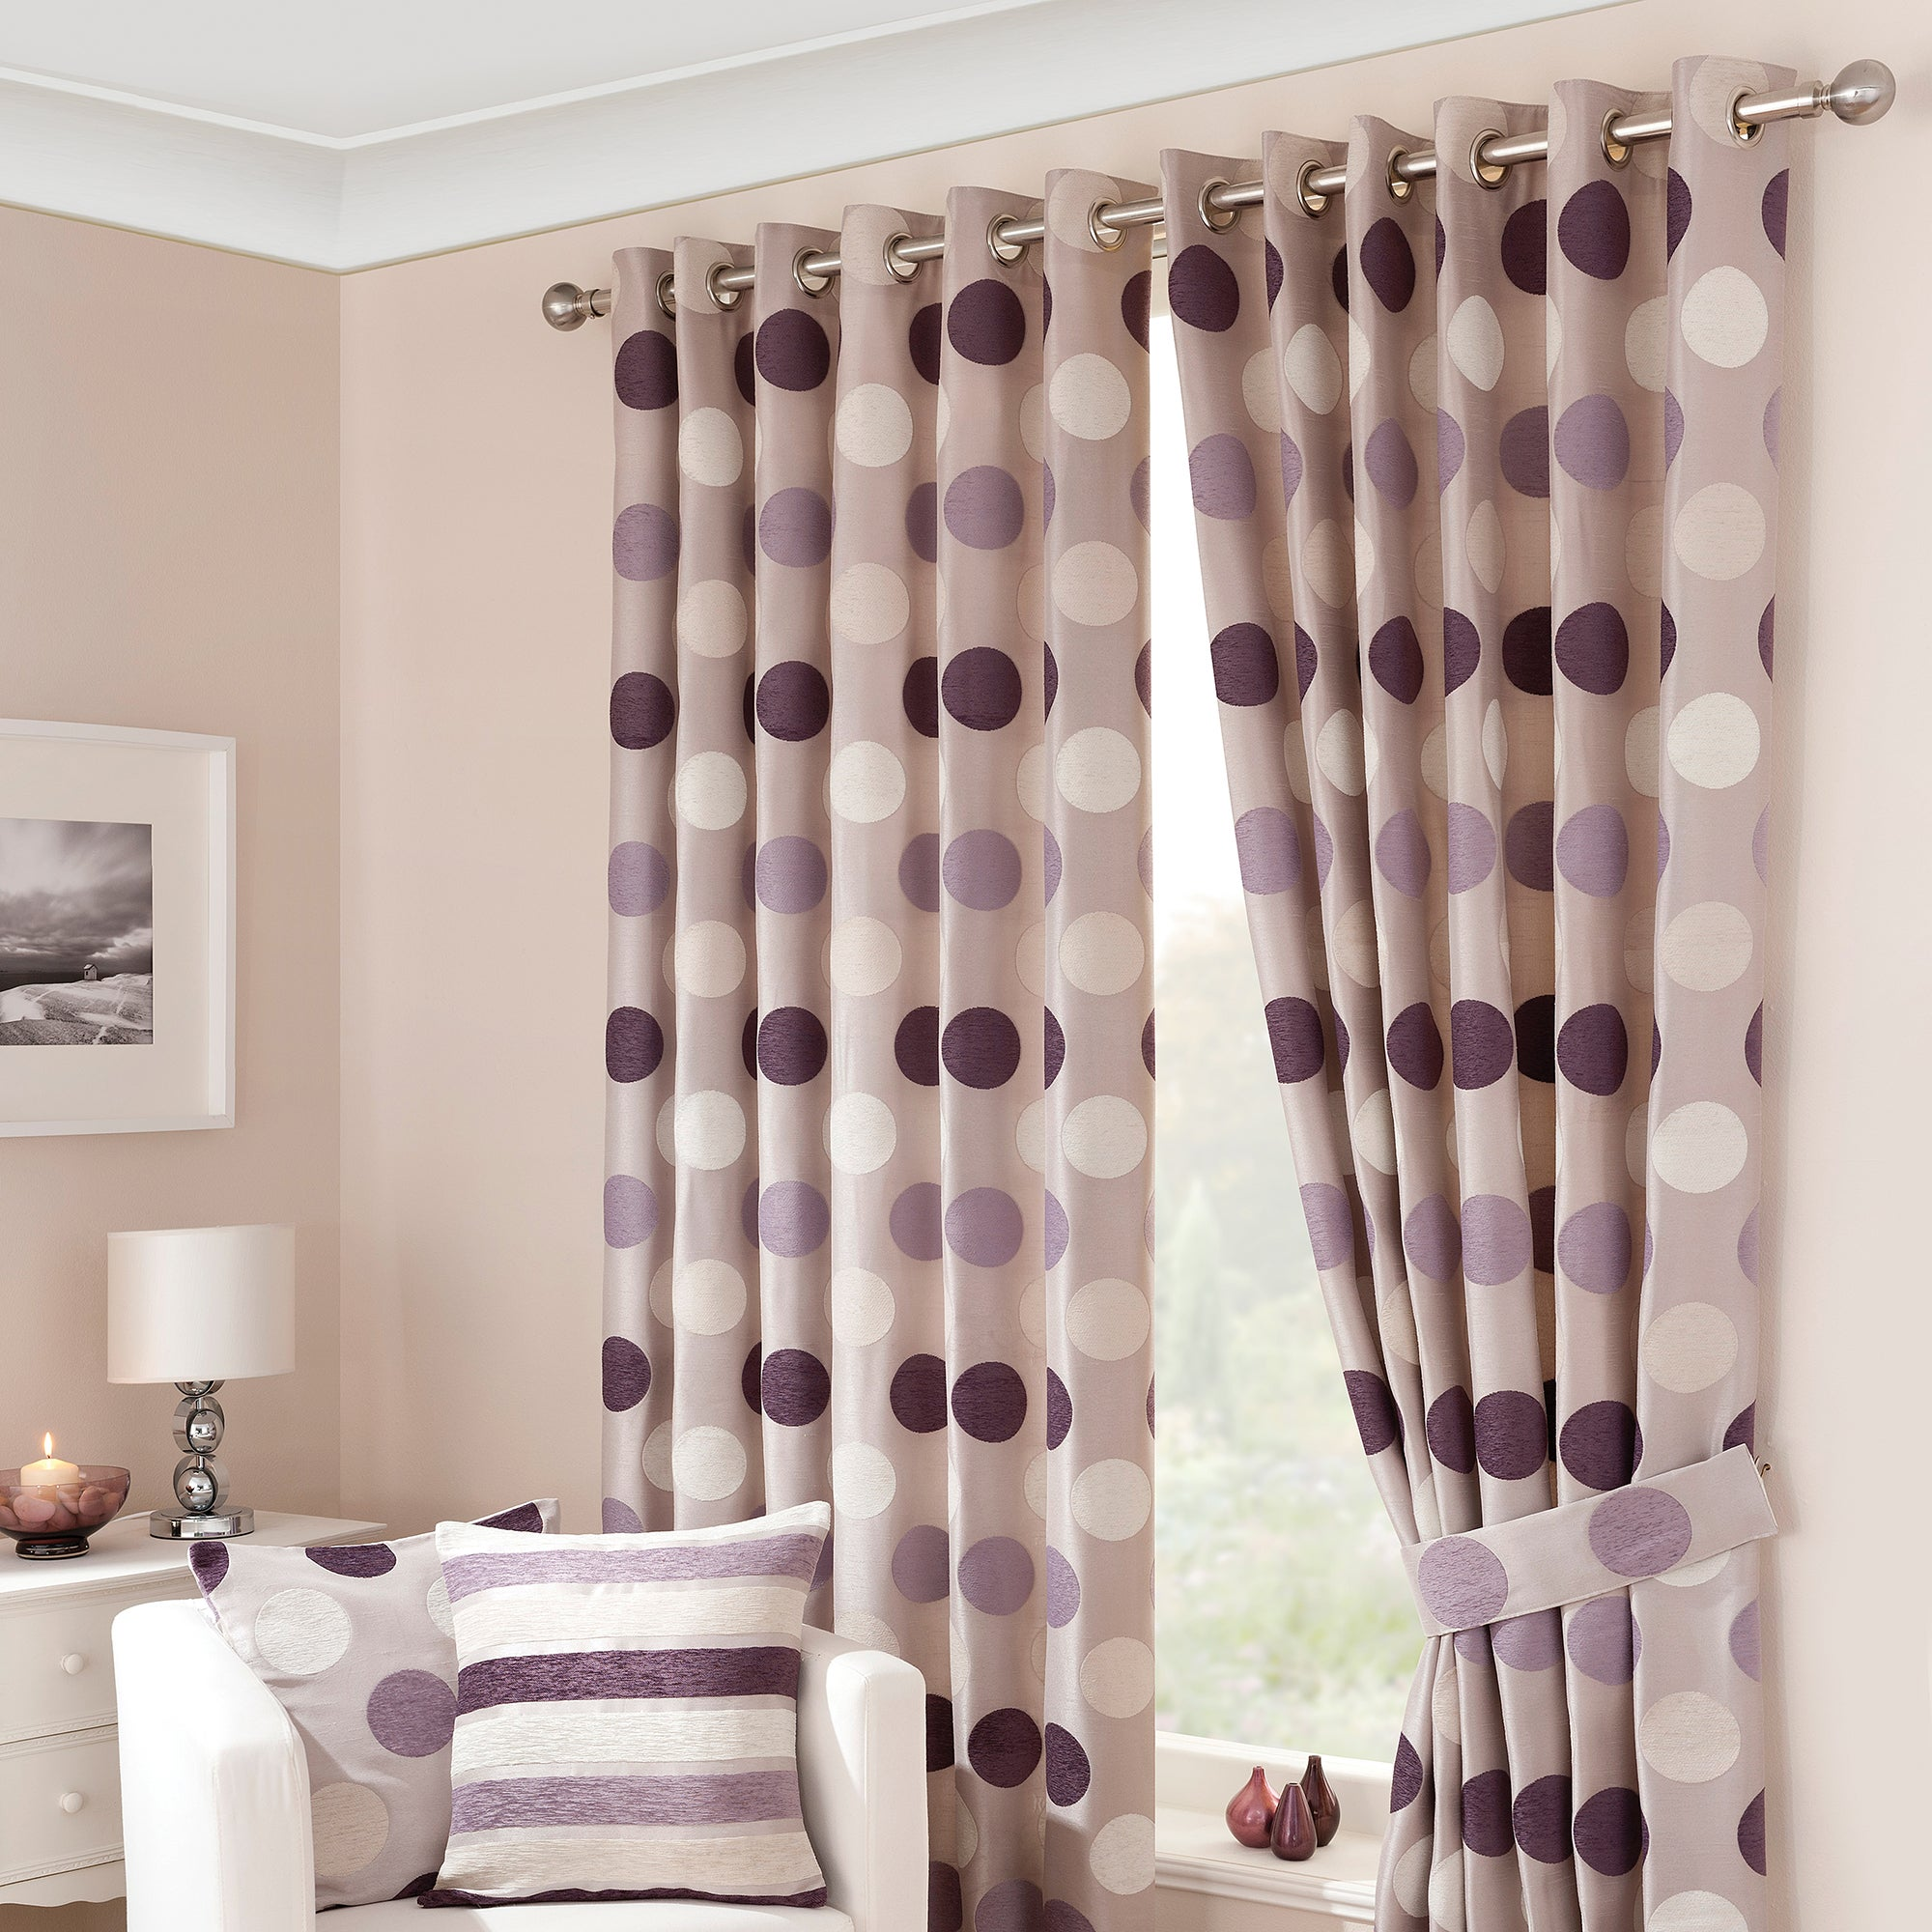 curtains compare prices on curtains blinds page 3. Black Bedroom Furniture Sets. Home Design Ideas